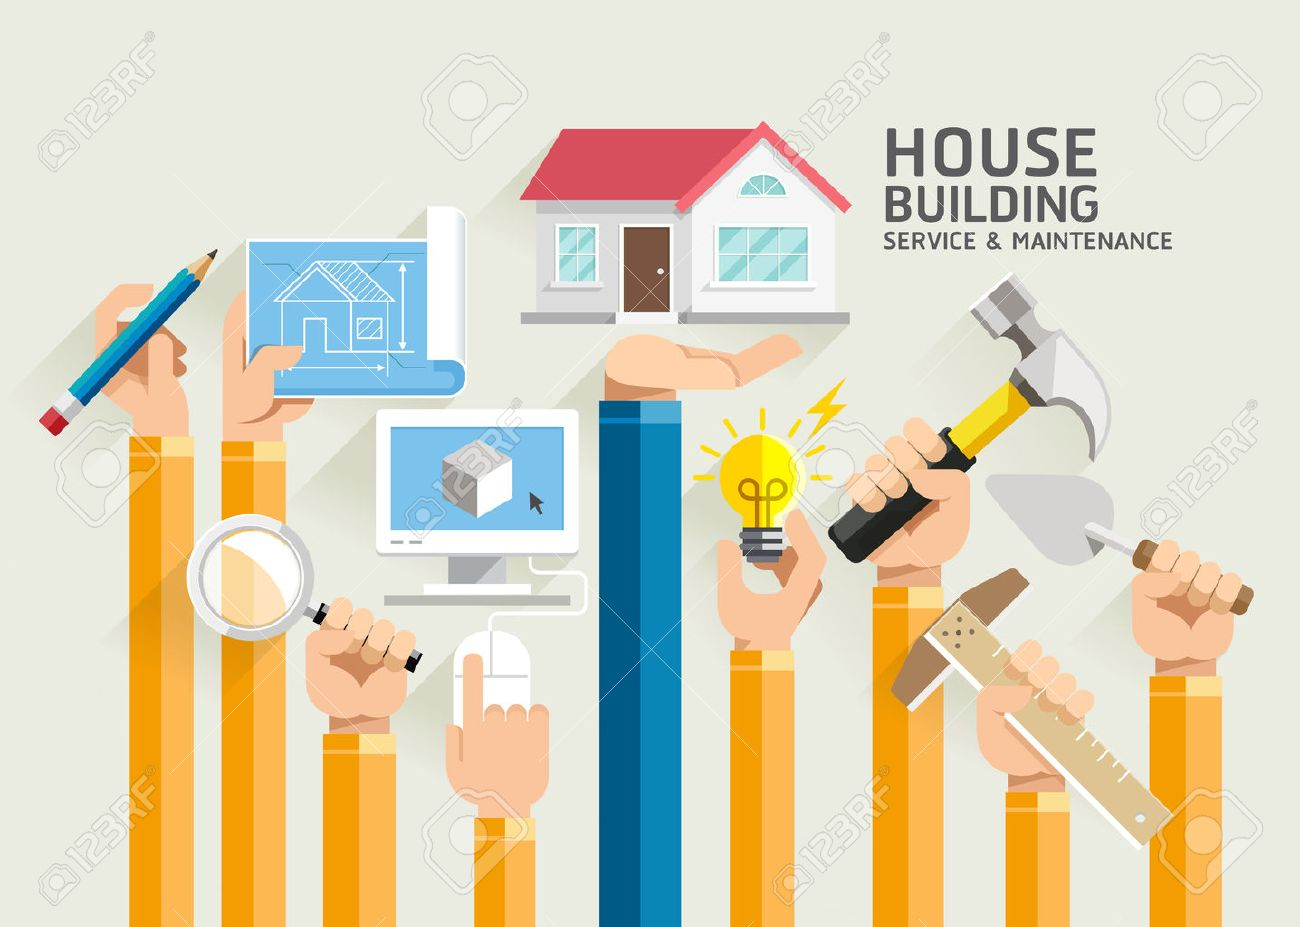 House Building Service and Maintenance. Illustrations. - 50958305